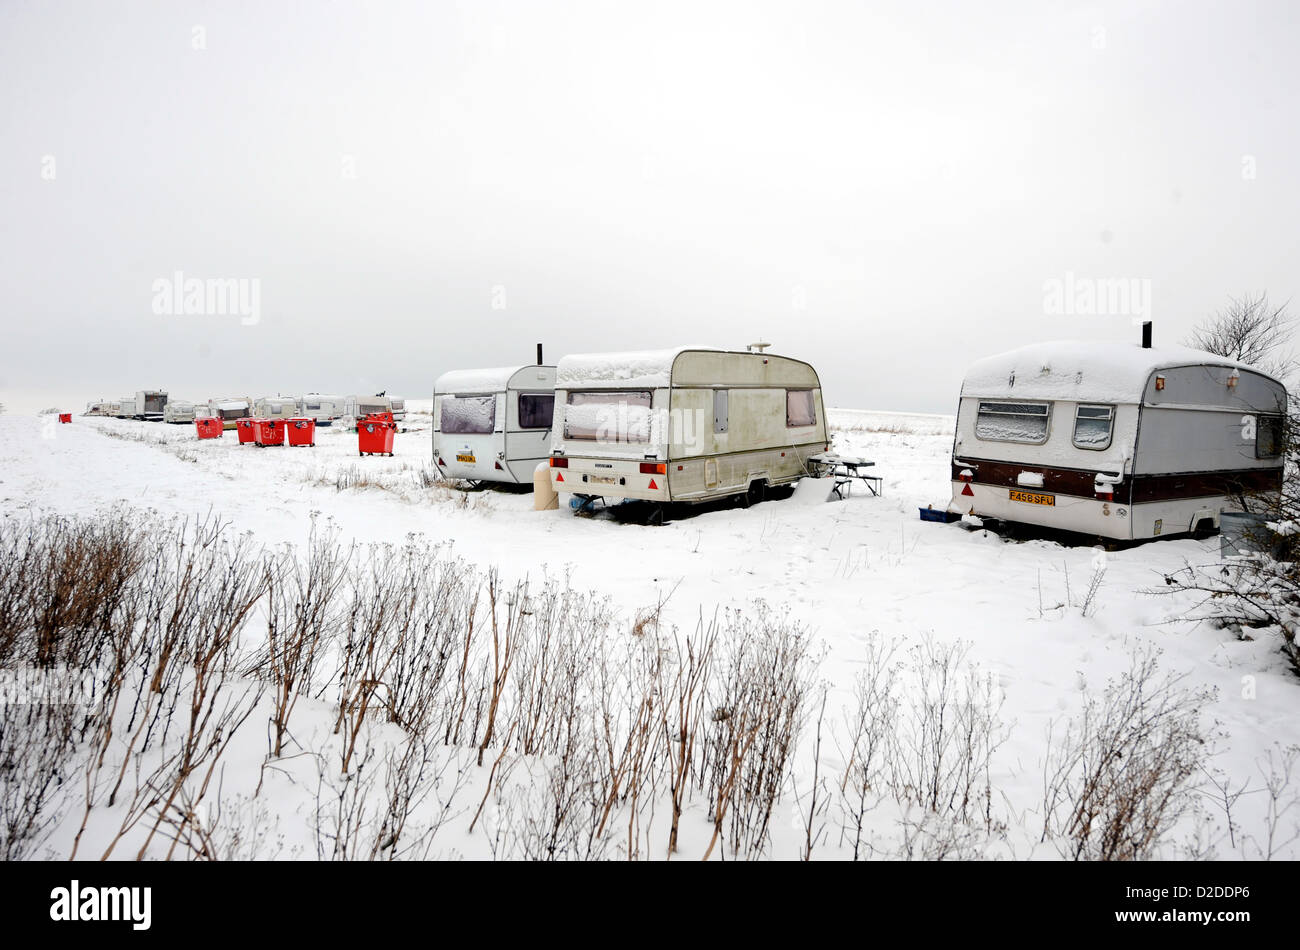 near Brighton, Sussex, UK. 21 January 2013 - Travellers caravans nestling in the snow on the way up Devil's - Stock Image